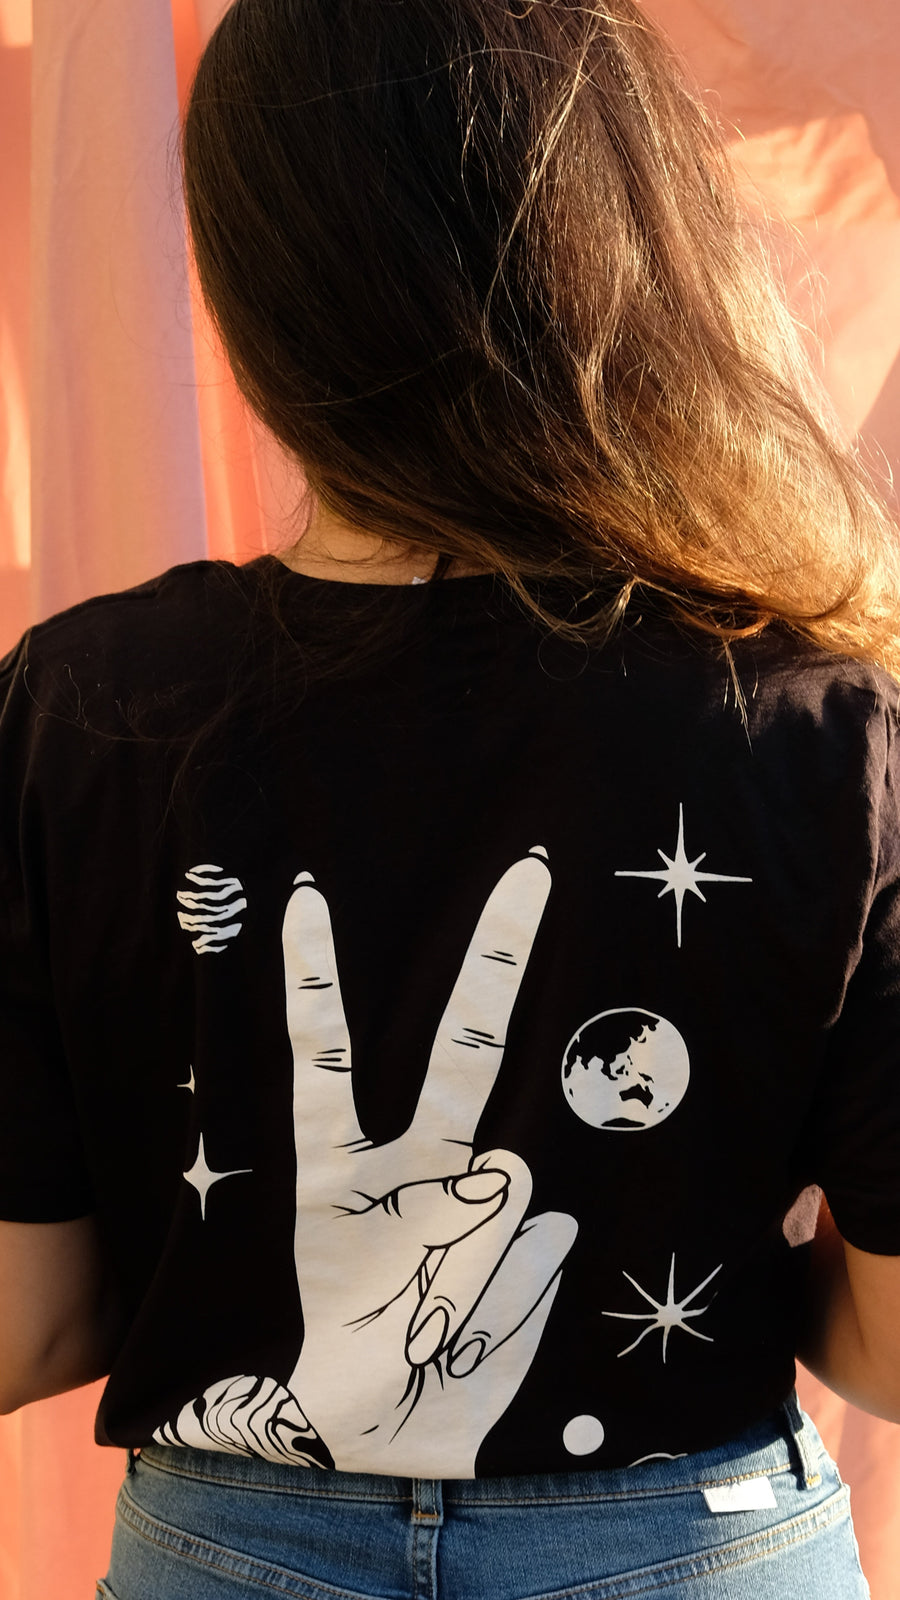 Astronomy Club Organic Cotton Tee Designed by Illustrator Anja Slibar